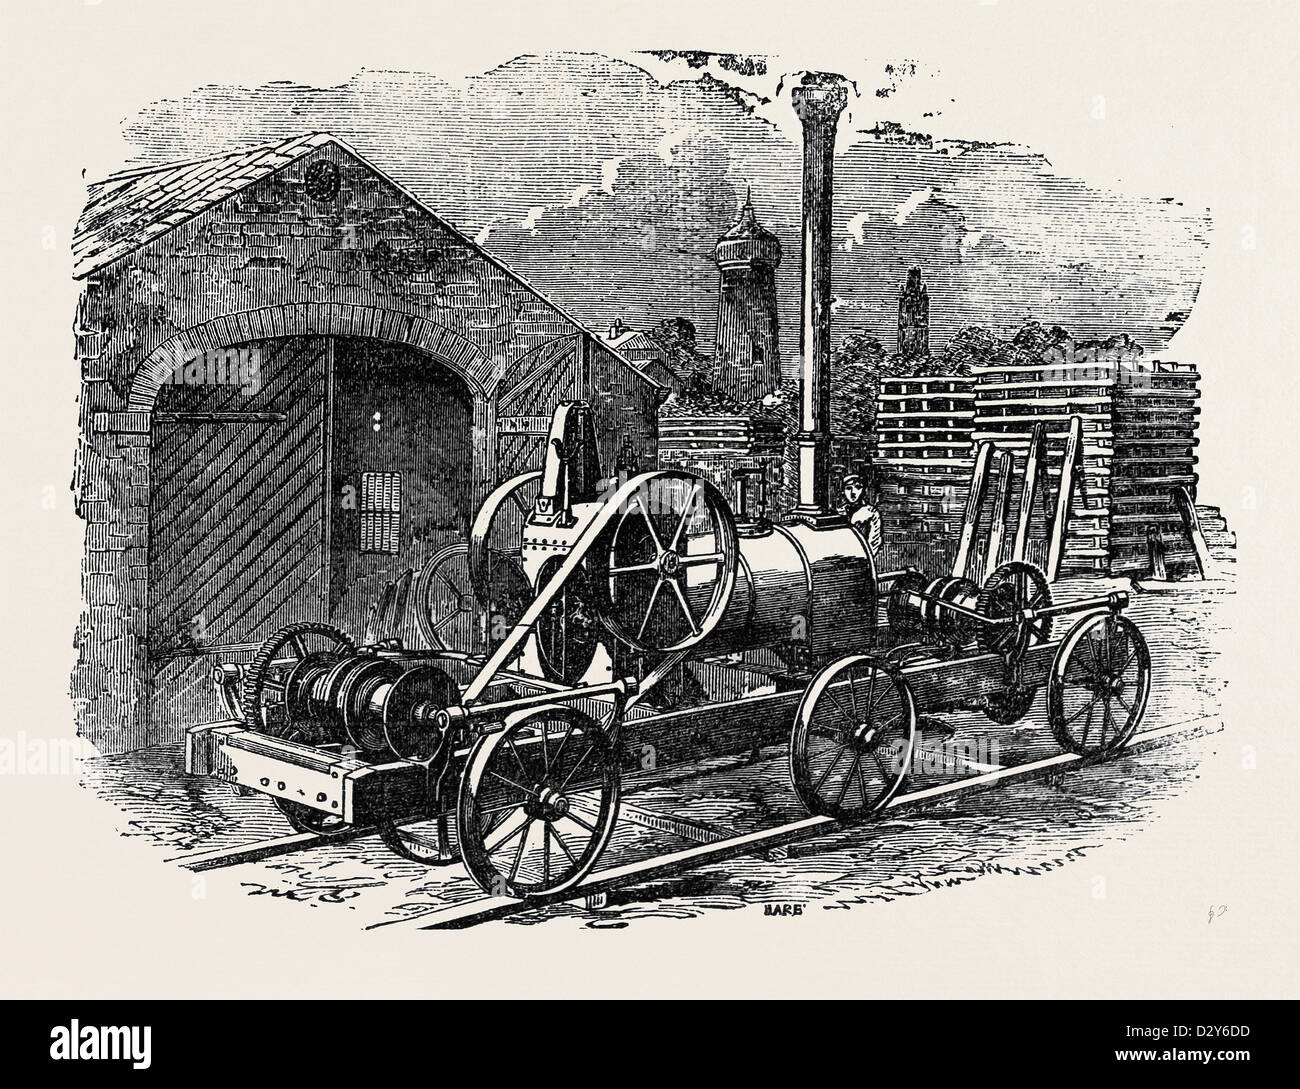 TUXFORD AND SONS' STEAM PILE-DRIVING ENGINE, WITH TWO DOUBLE ACTING PURCHASES FOR LIFTING FOUR RAMS AT A TIME. - Stock Image